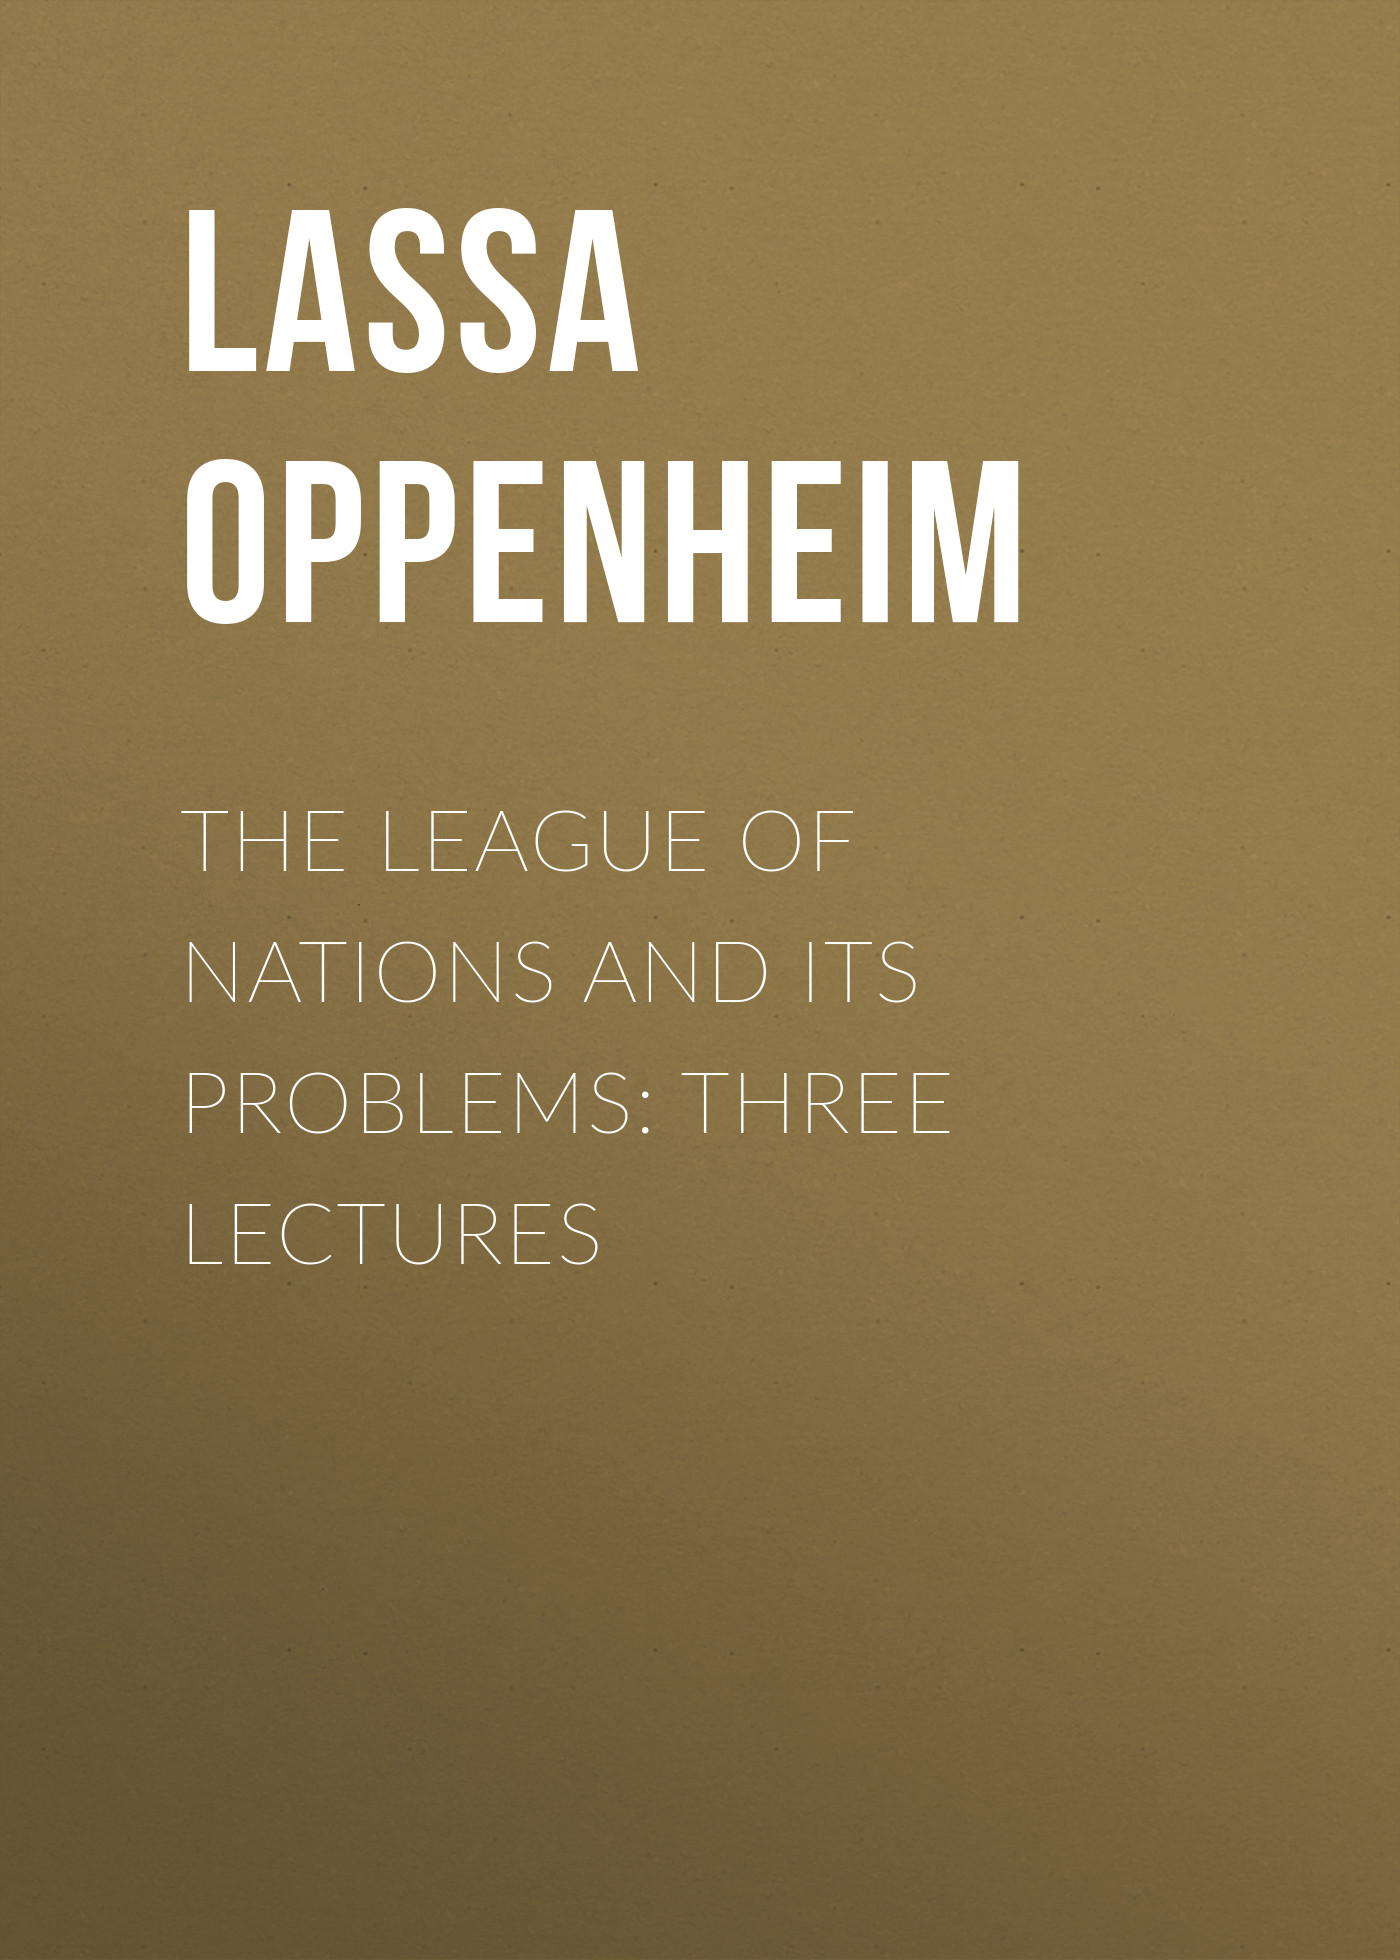 Lassa Oppenheim The League of Nations and Its Problems: Three Lectures